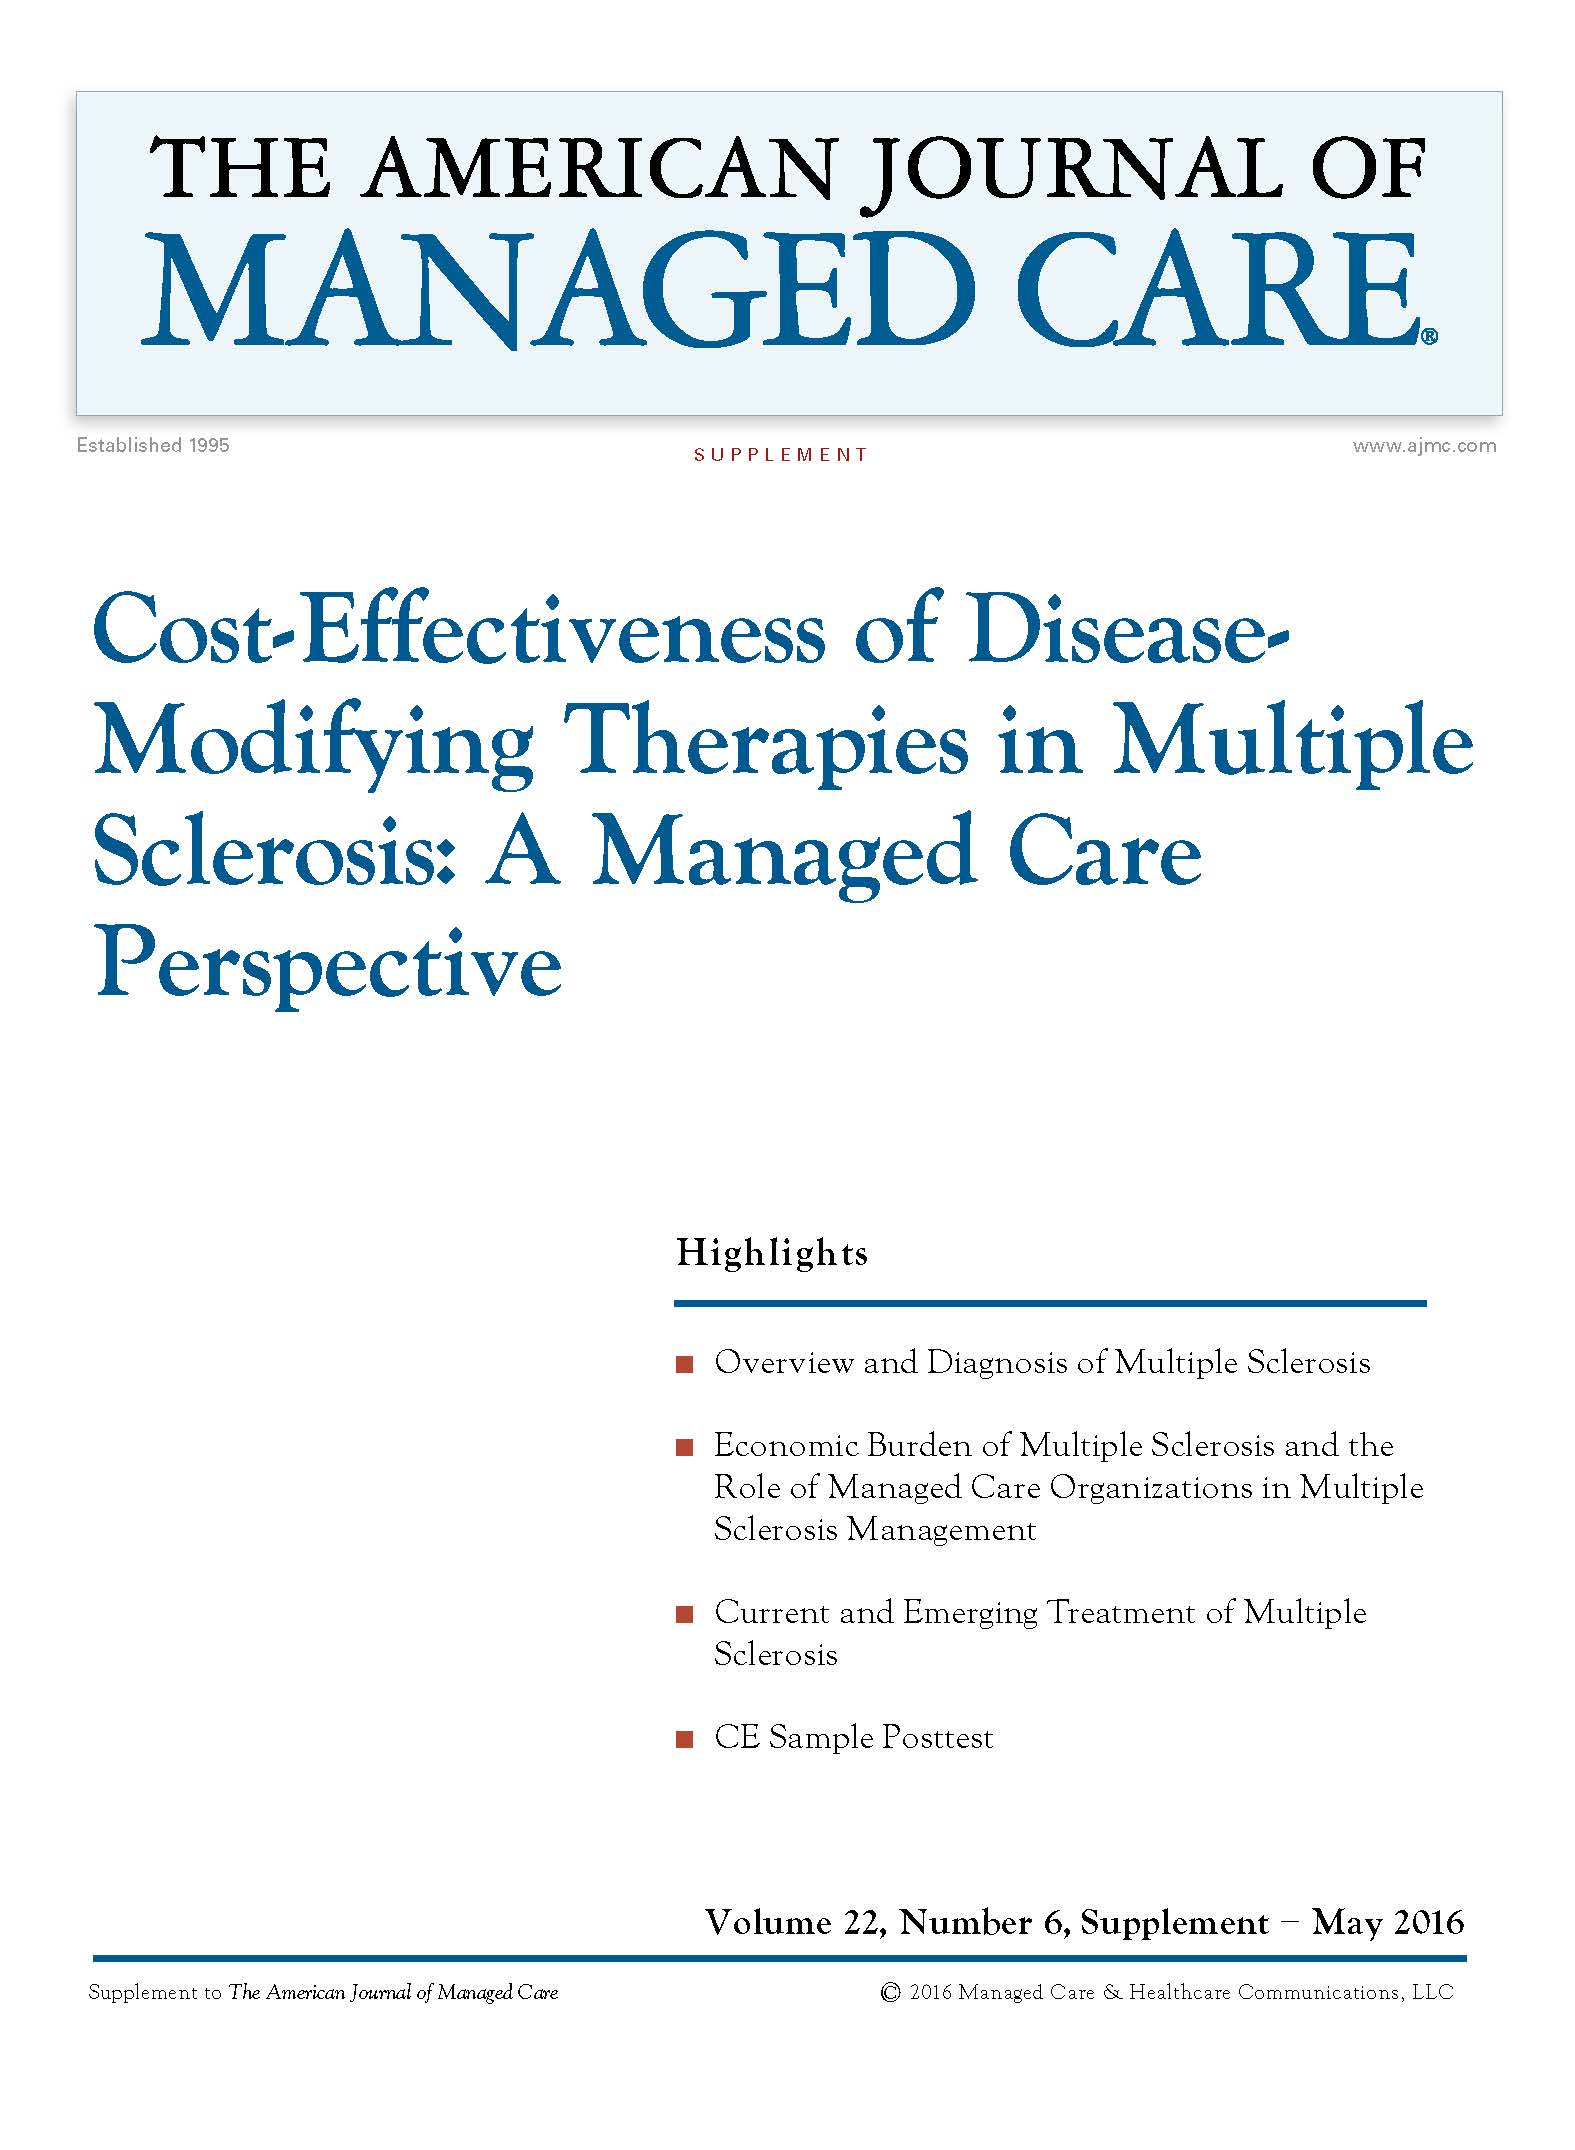 Cost-Effectiveness of Disease- Modifying Therapies in Multiple Sclerosis: A Managed Care Perspective